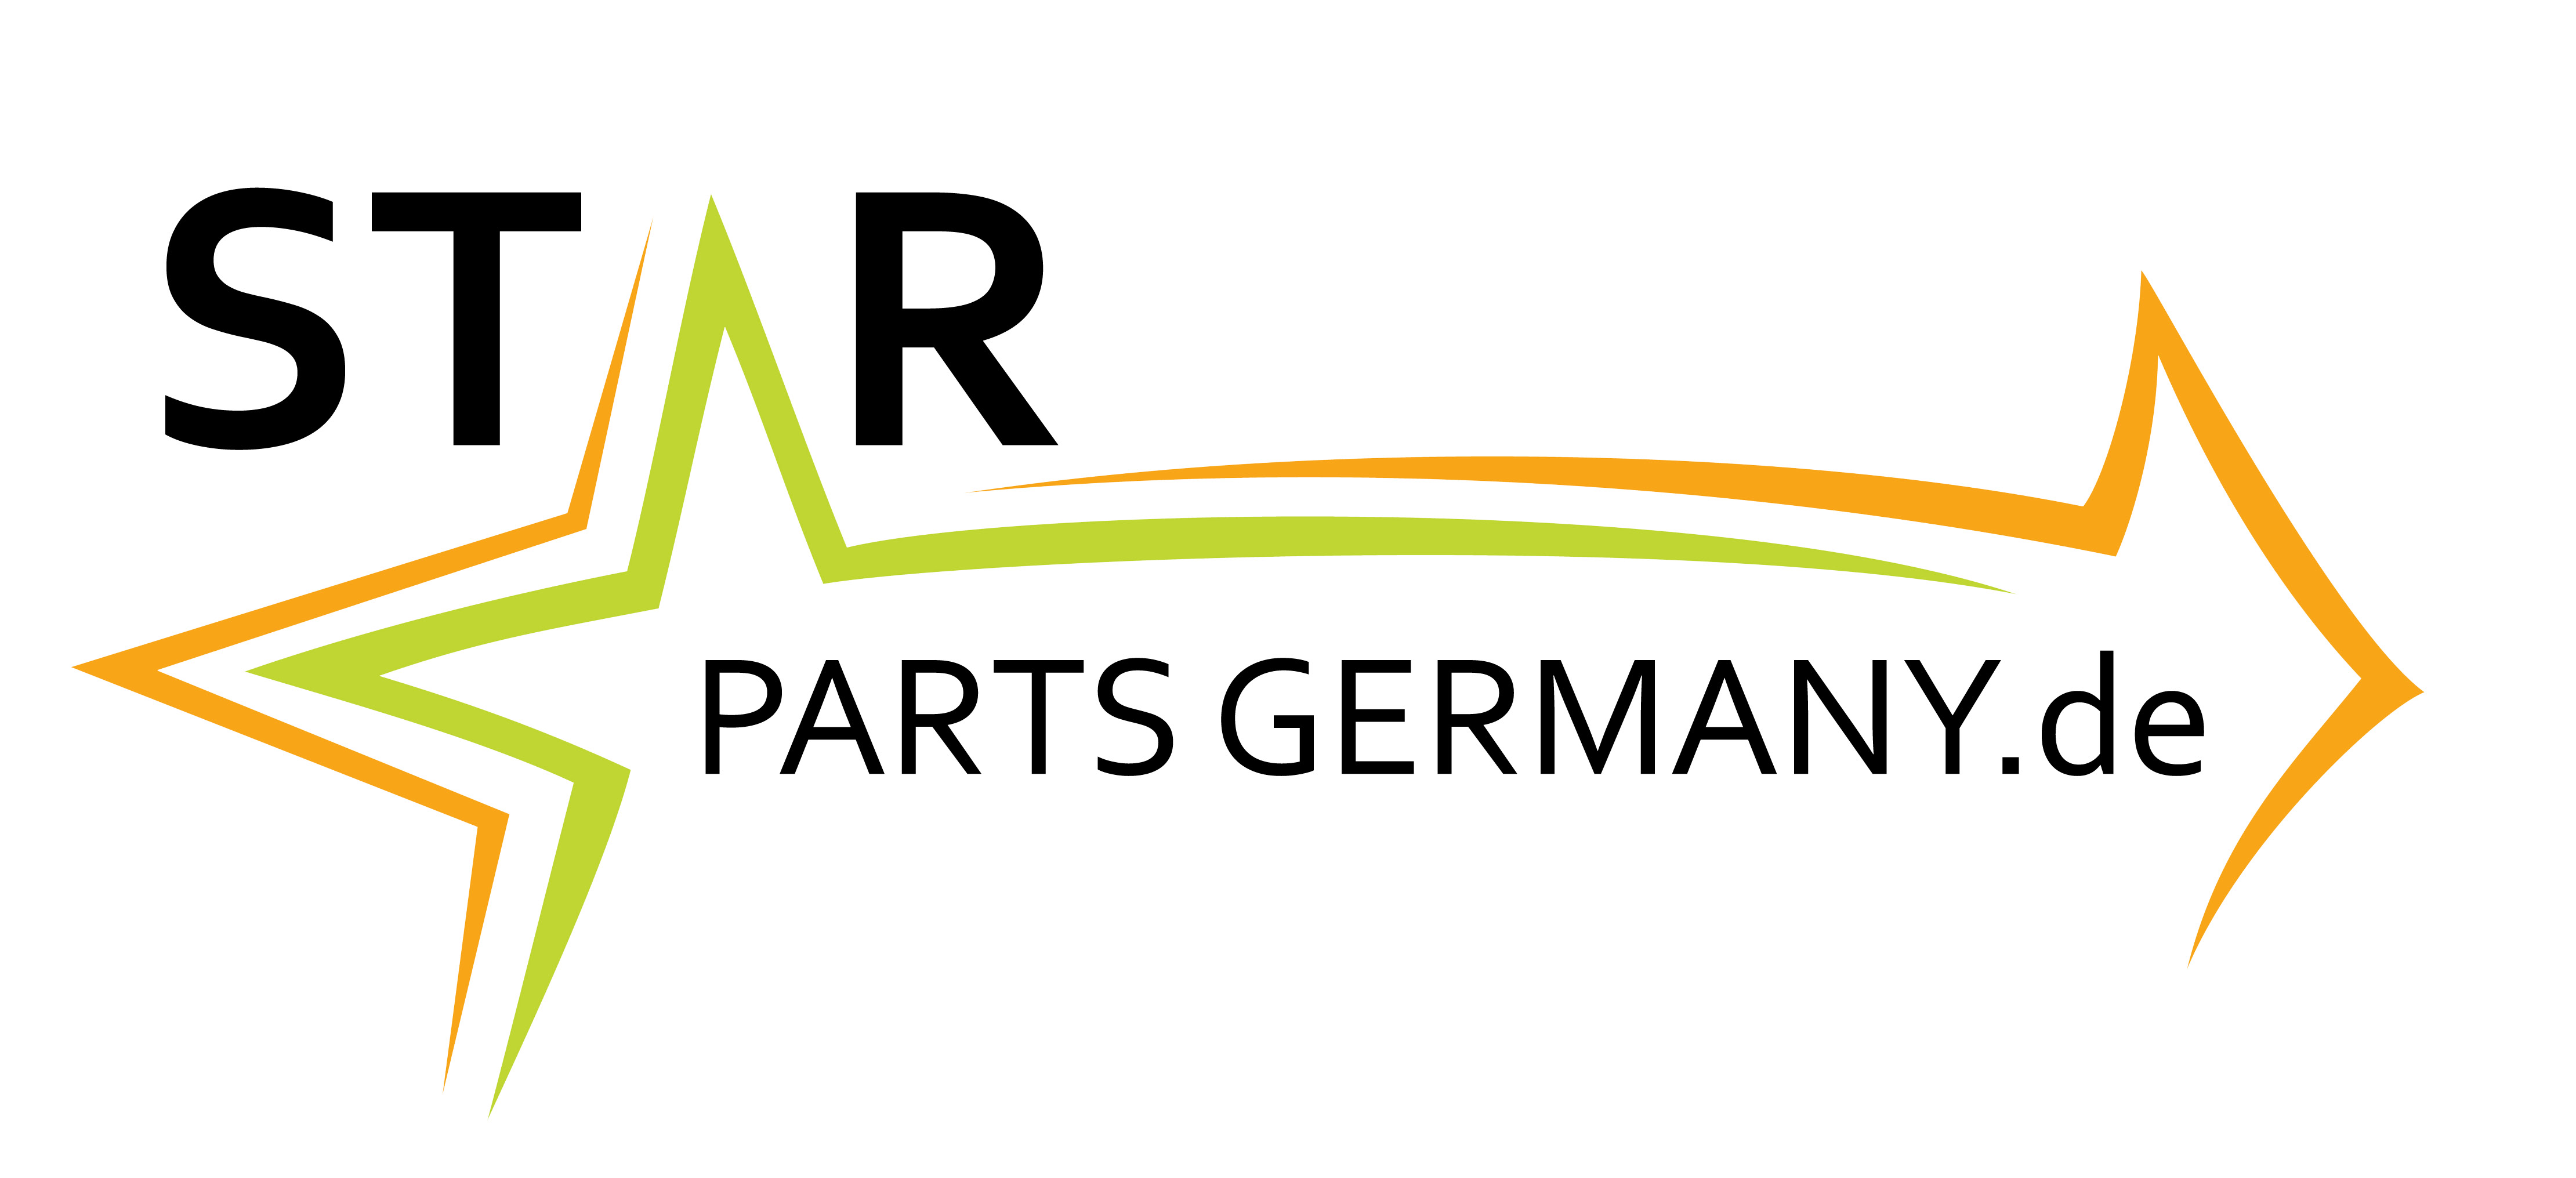 Star Parts Germany